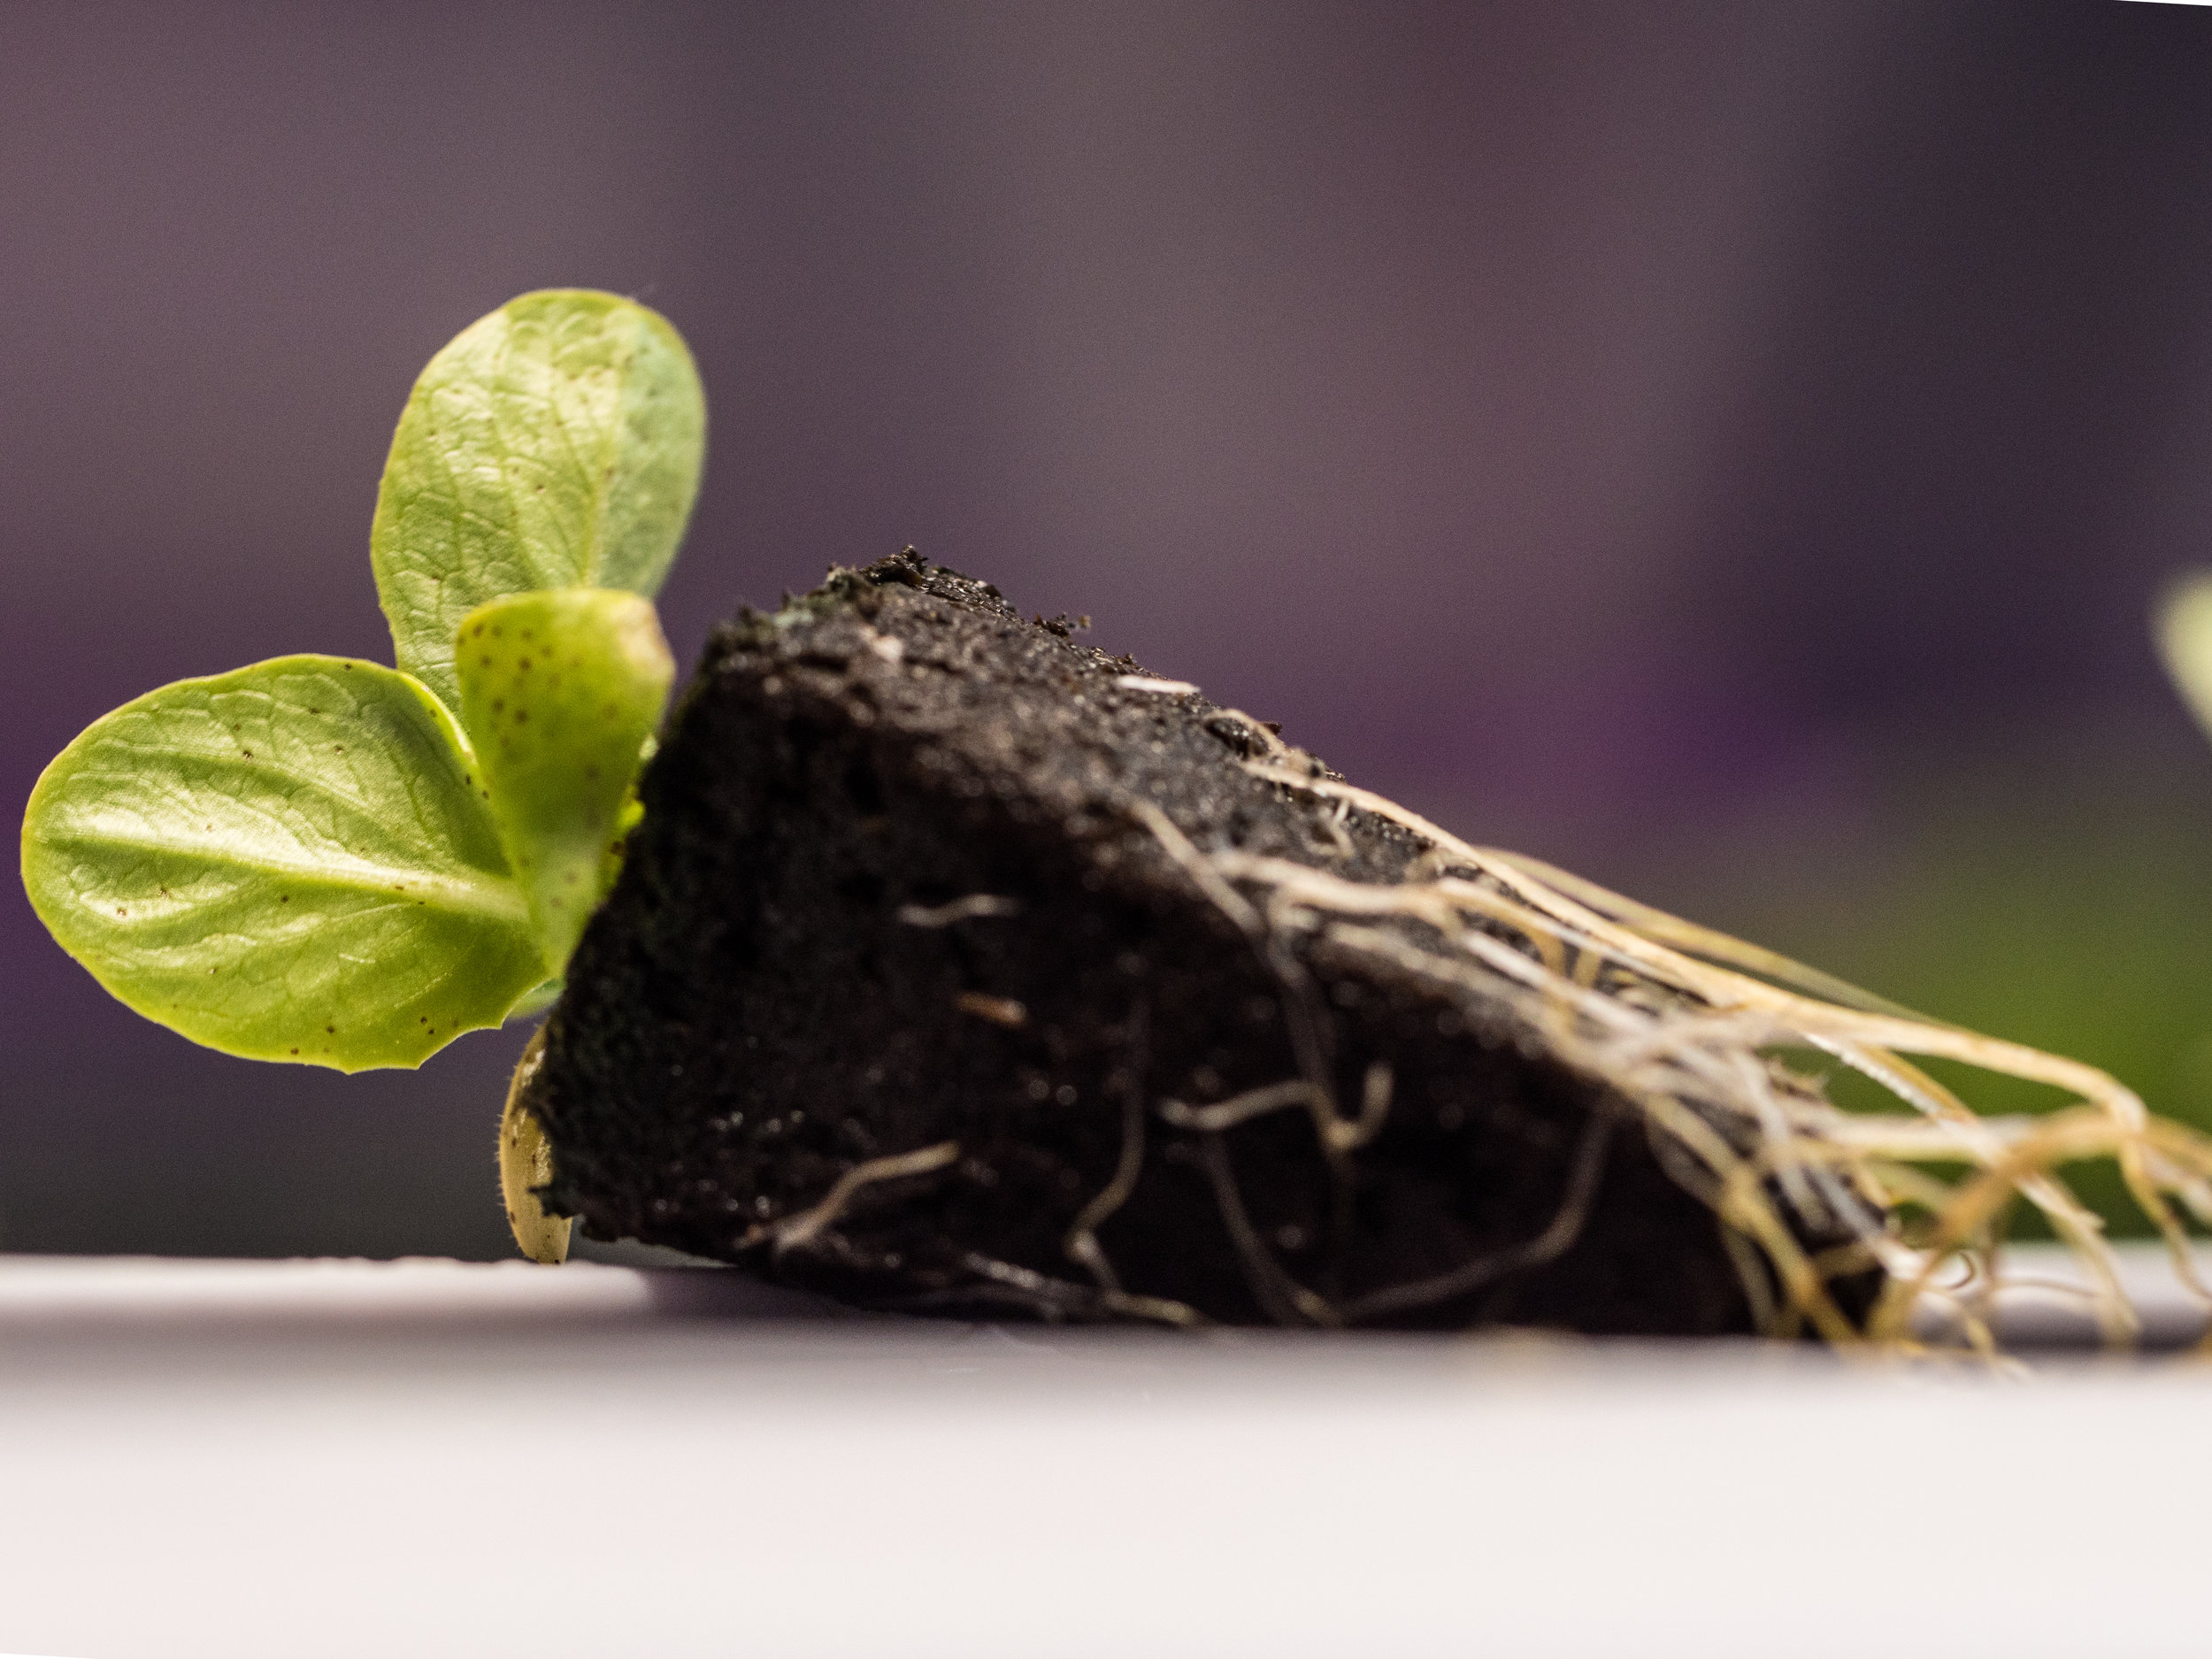 LGM_seedling_with_roots.jpg